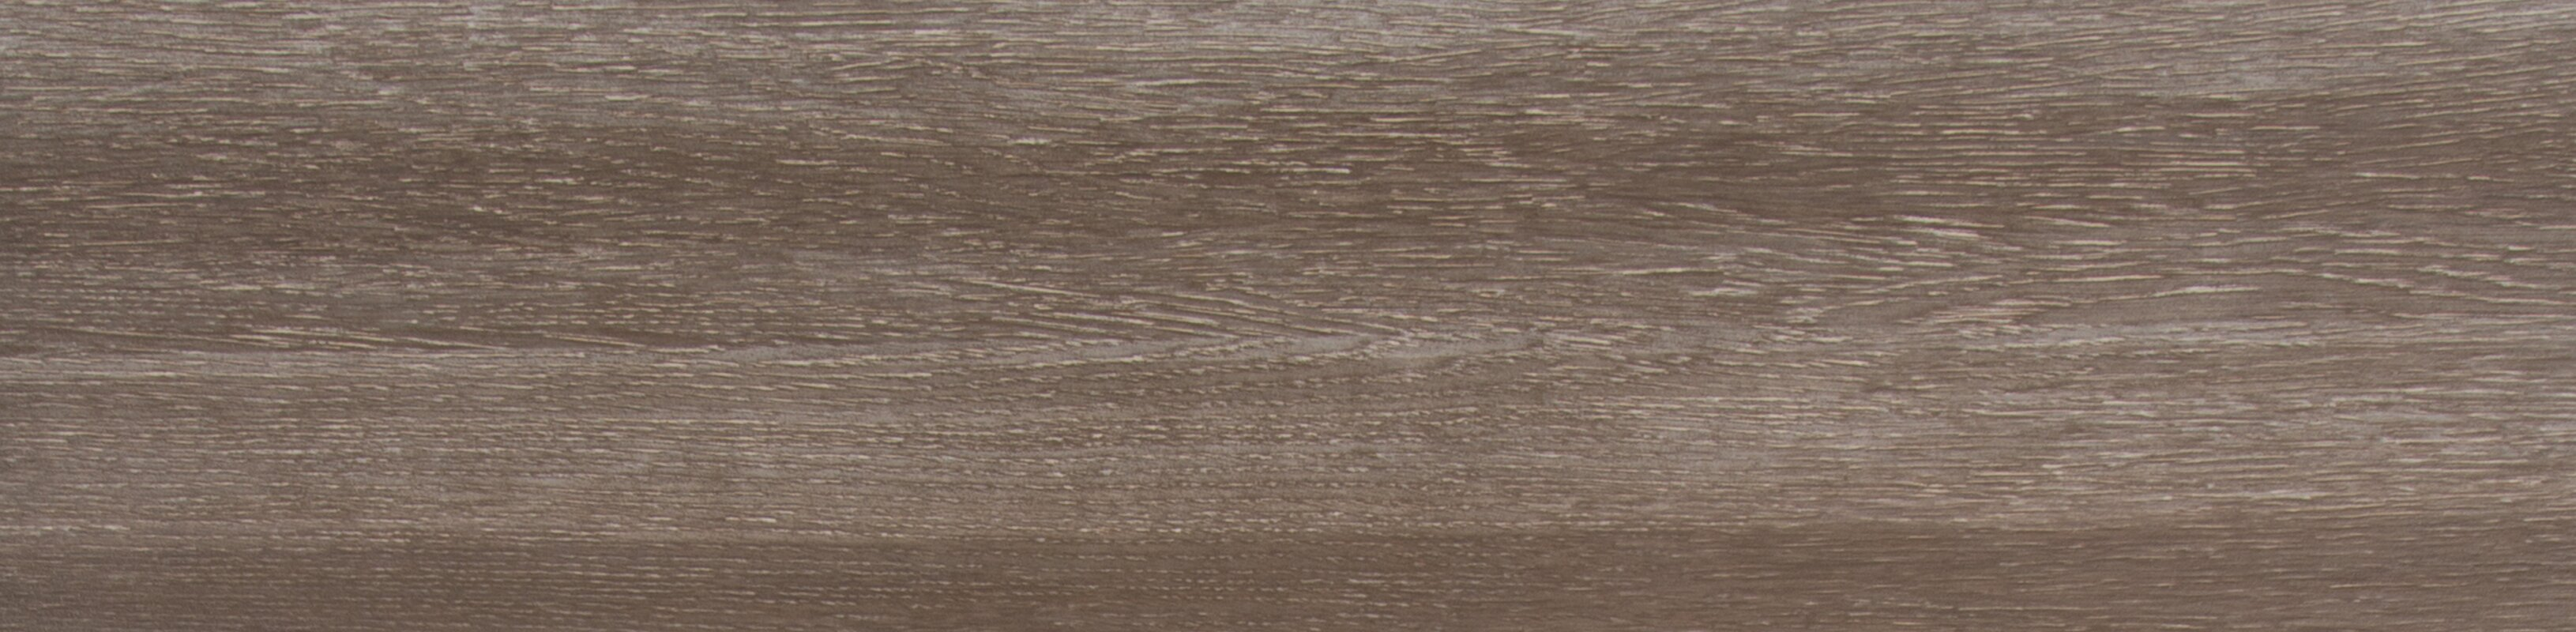 """MSI Turin 6"""" x 24"""" Wood Wood Look Field Tile in Taupe & Reviews"""